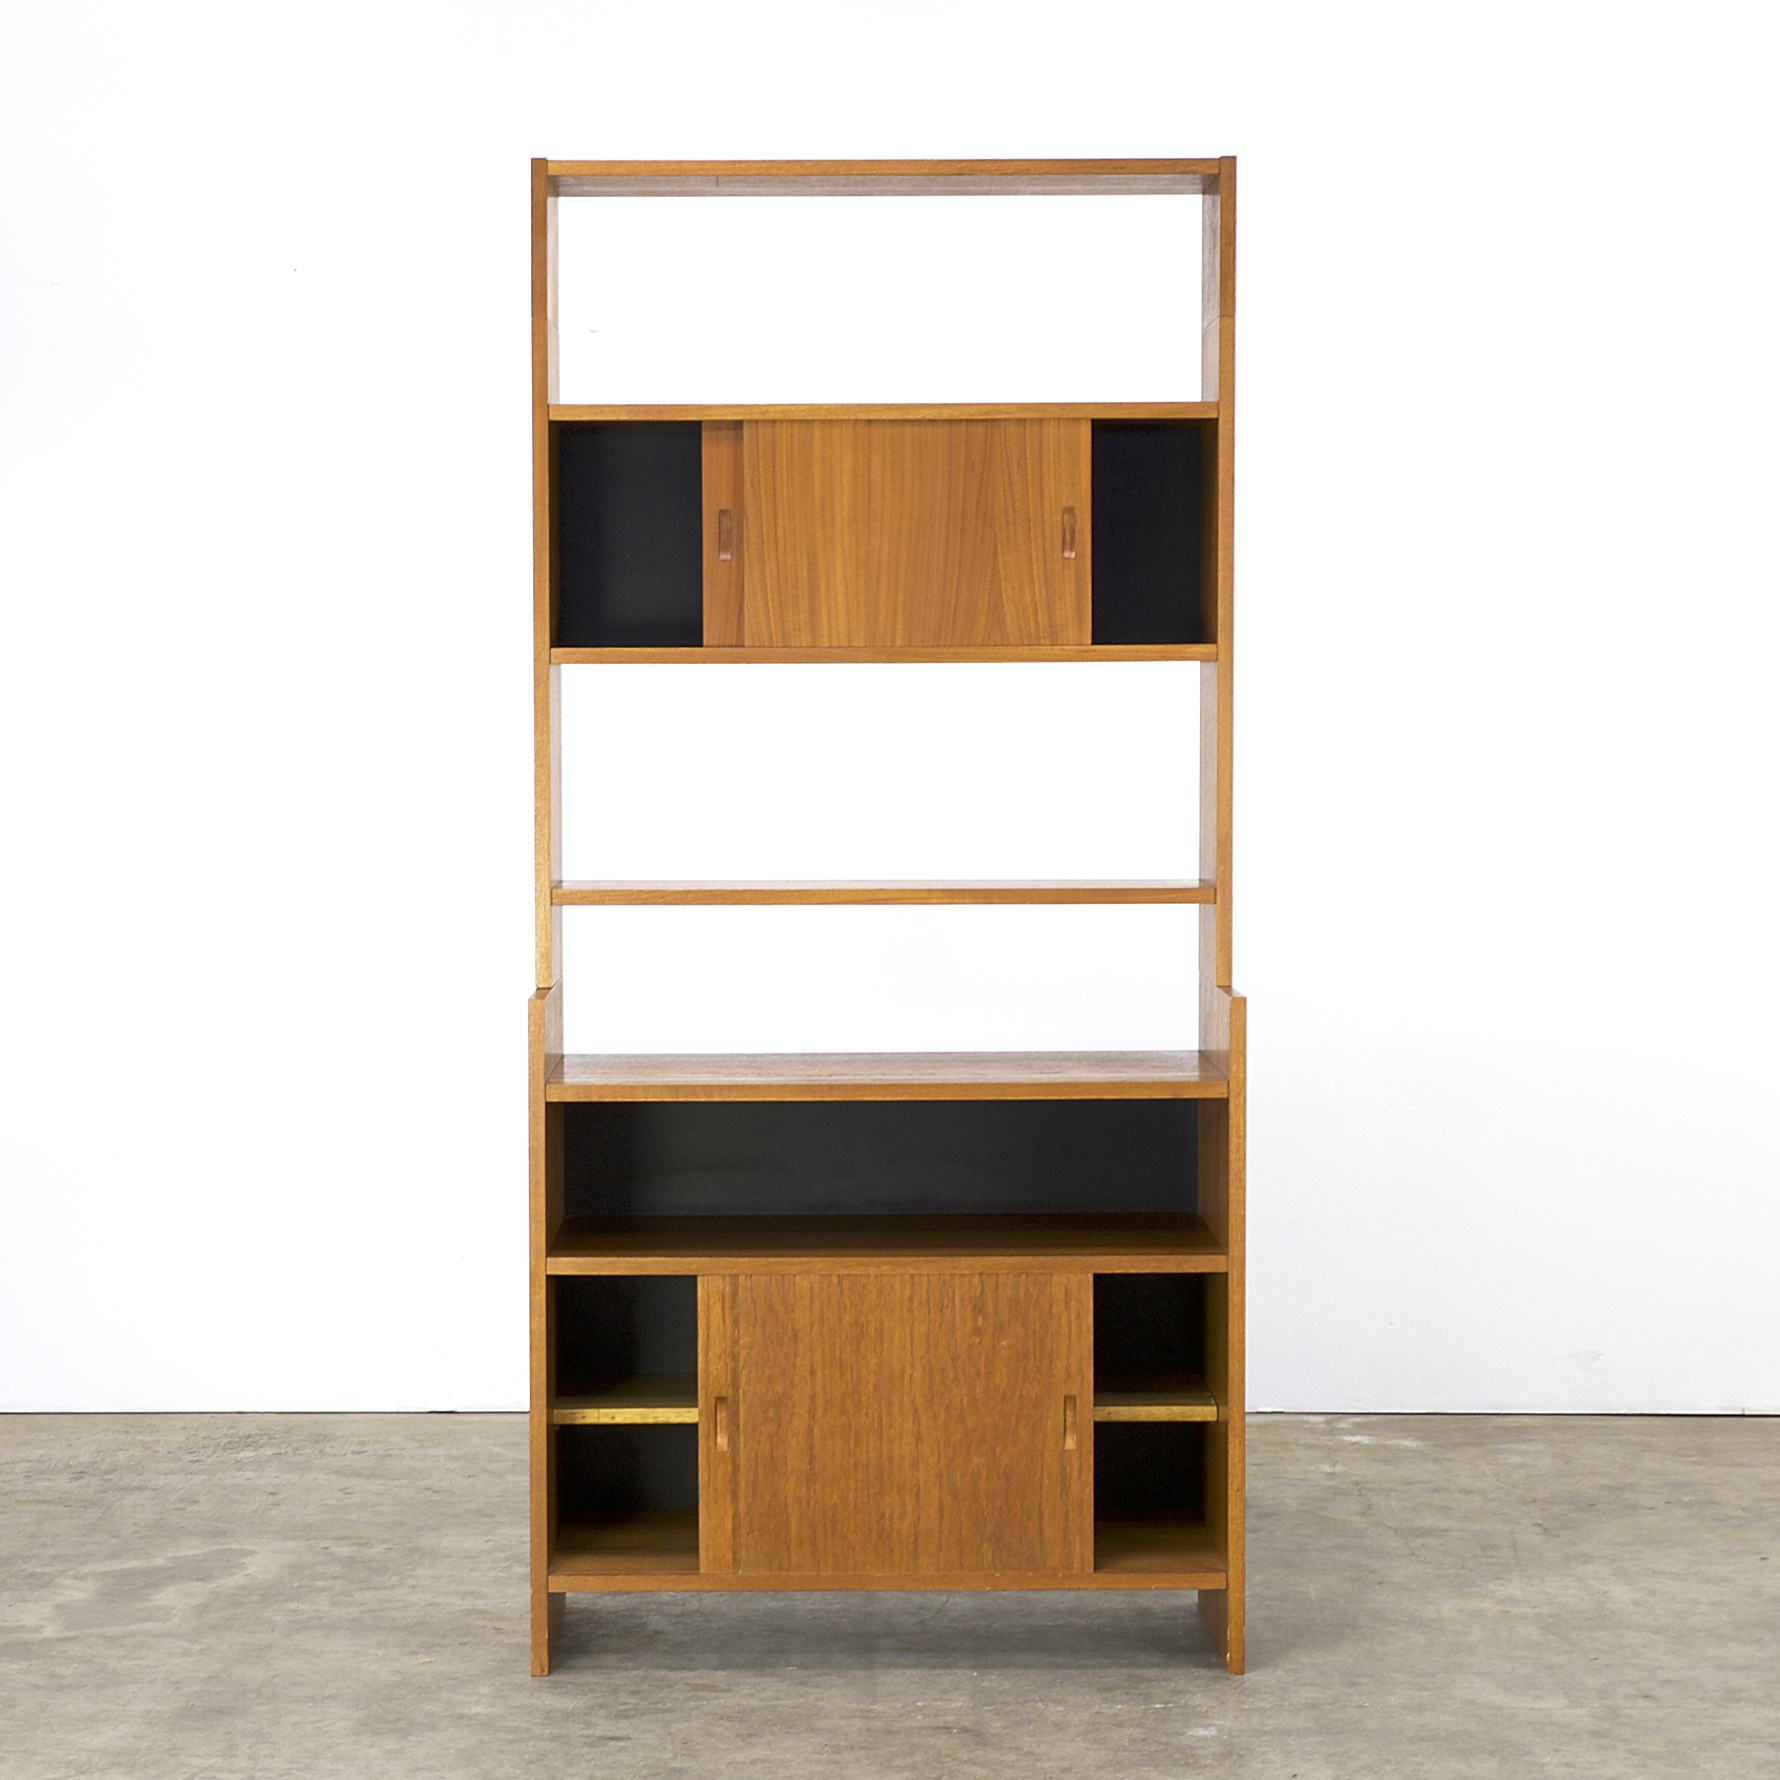 50s Poul Cadovius Wall Cabinet For KLM BarbMama